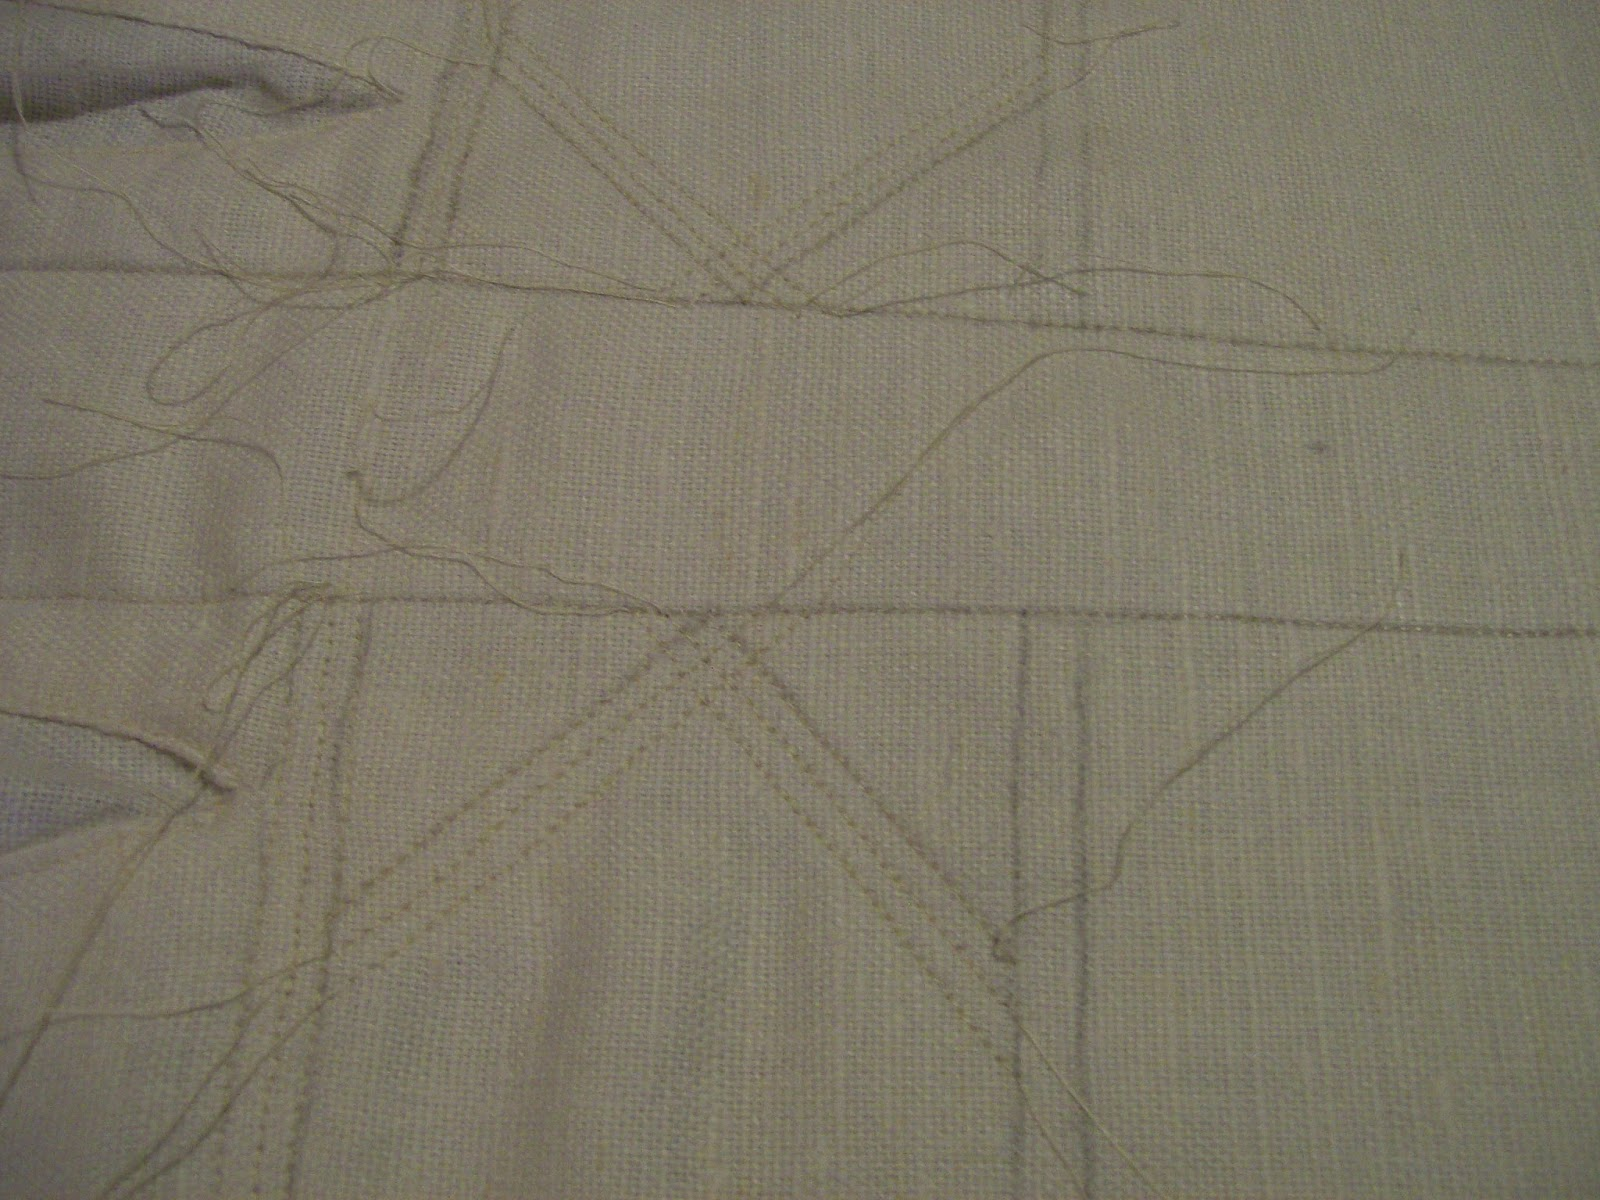 Quilting the stays for the trapunto work.